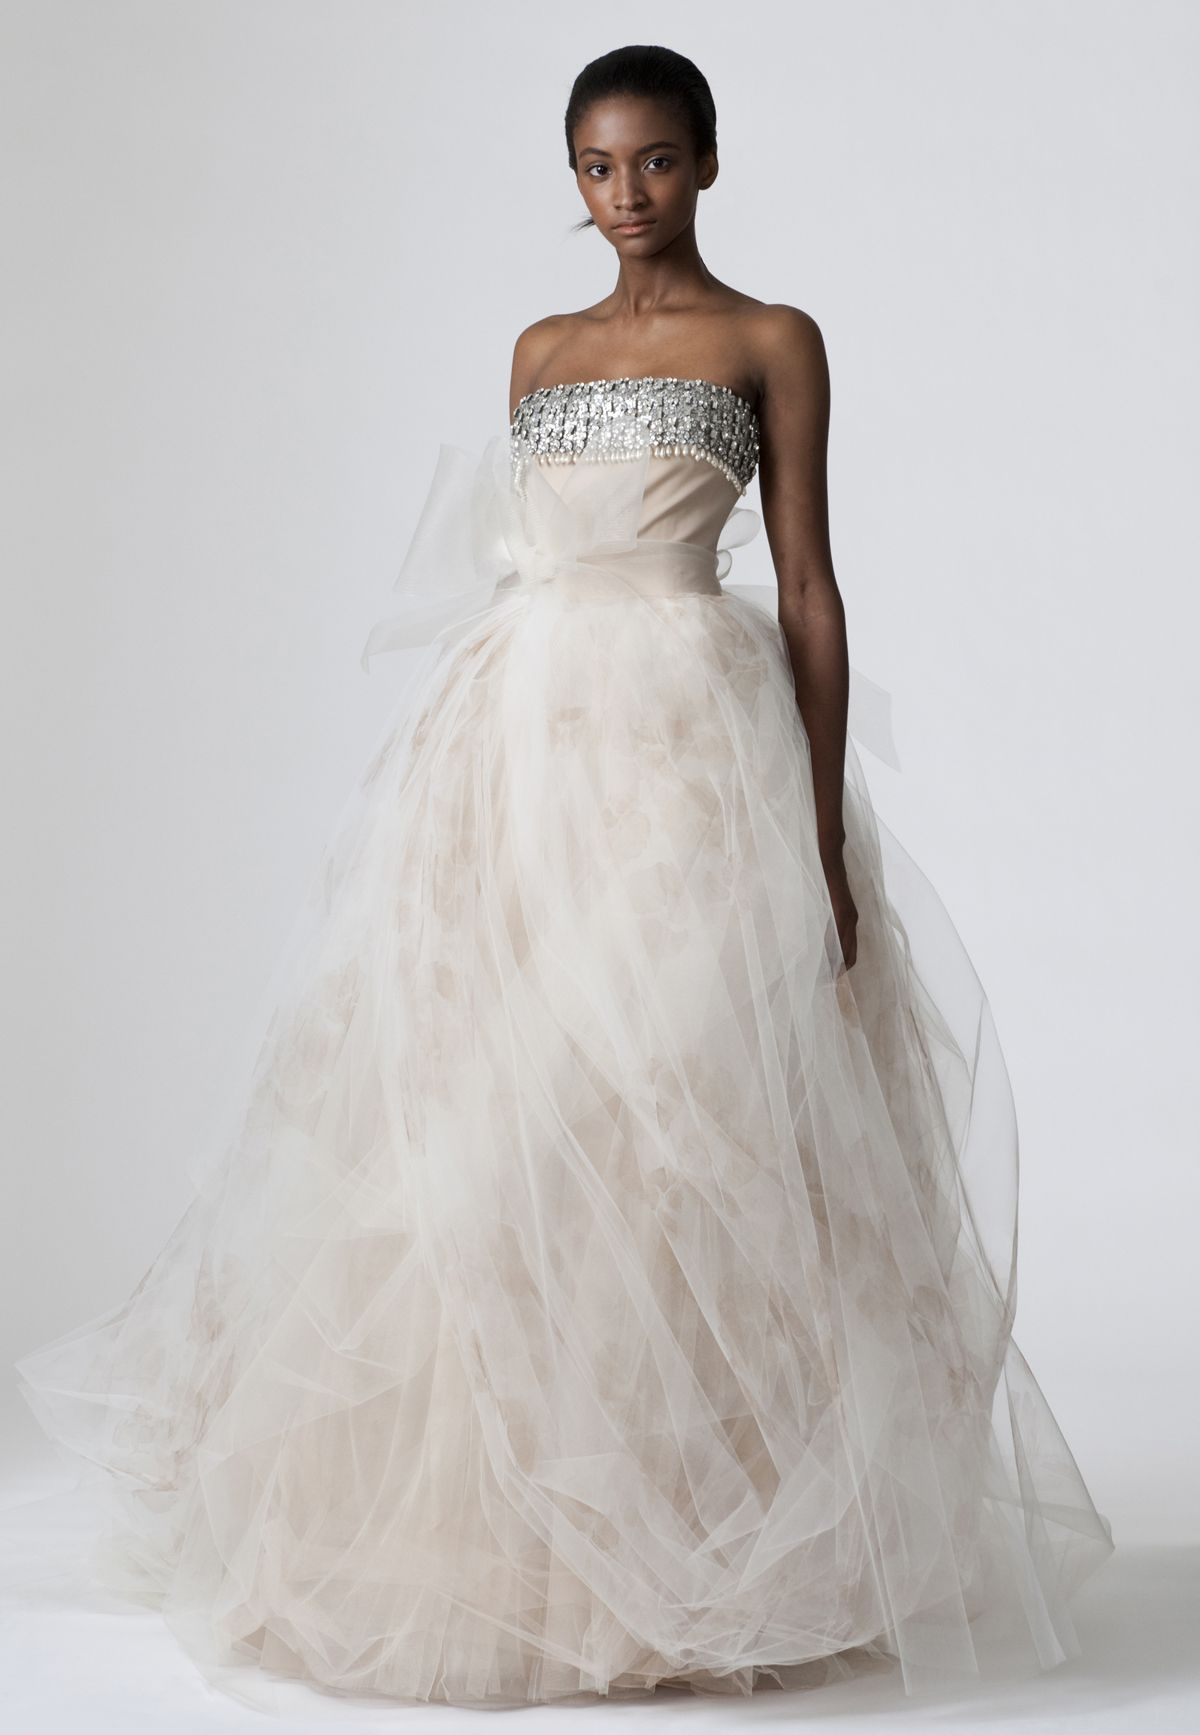 Dorothy #bridal gown. #VeraWang Classics. Let yourself fall in love ...